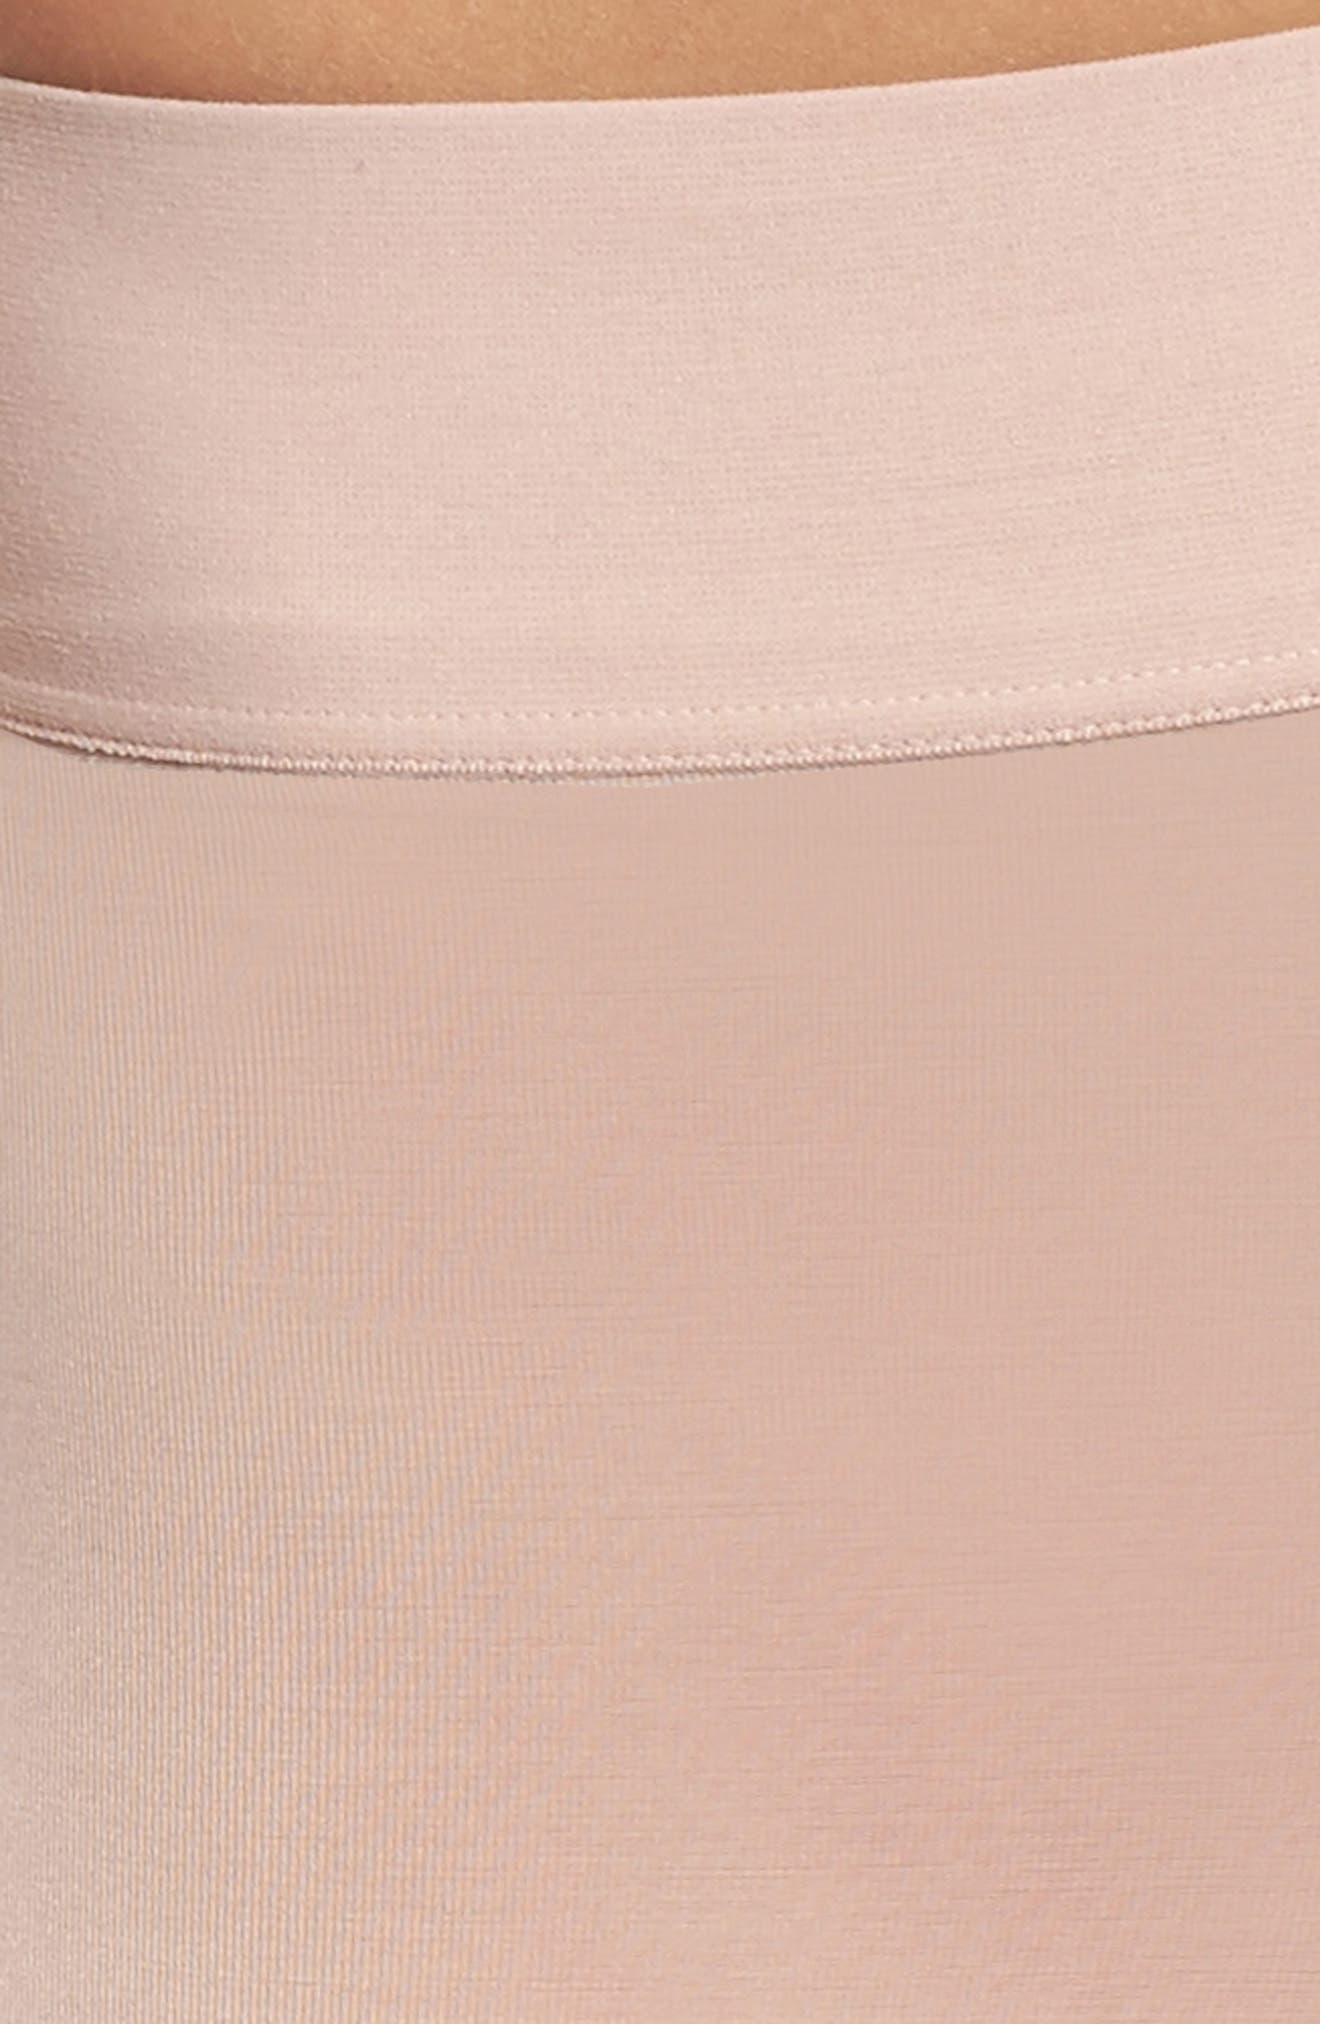 Alternate Image 4  - Wolford Sheer Touch Control Shorts